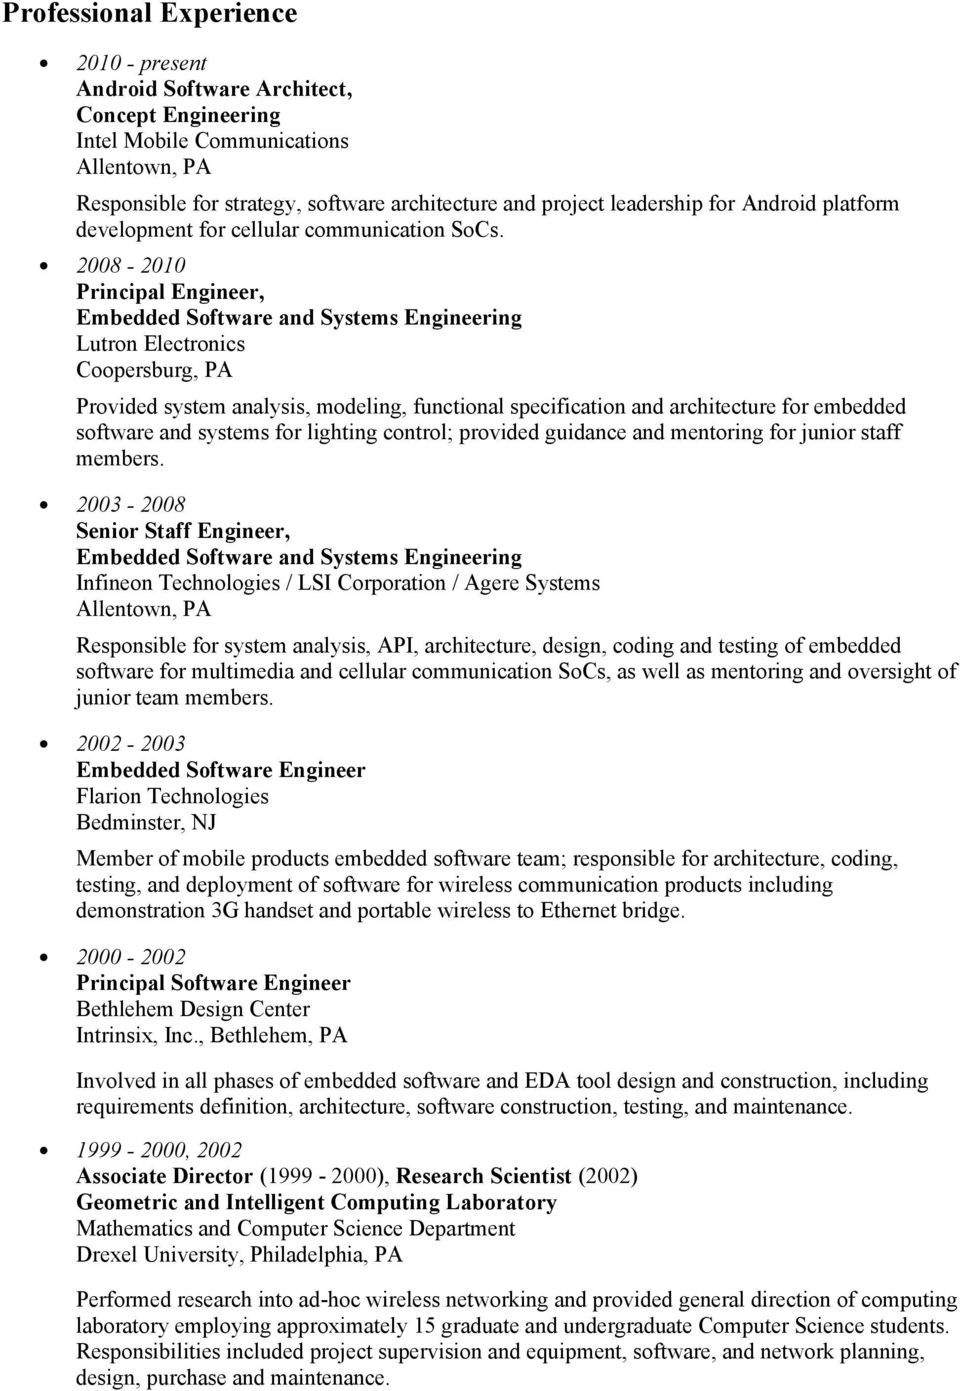 2008-2010 Principal Engineer, Embedded Software and Systems Engineering Lutron Electronics Coopersburg, PA Provided system analysis, modeling, functional specification and architecture for embedded